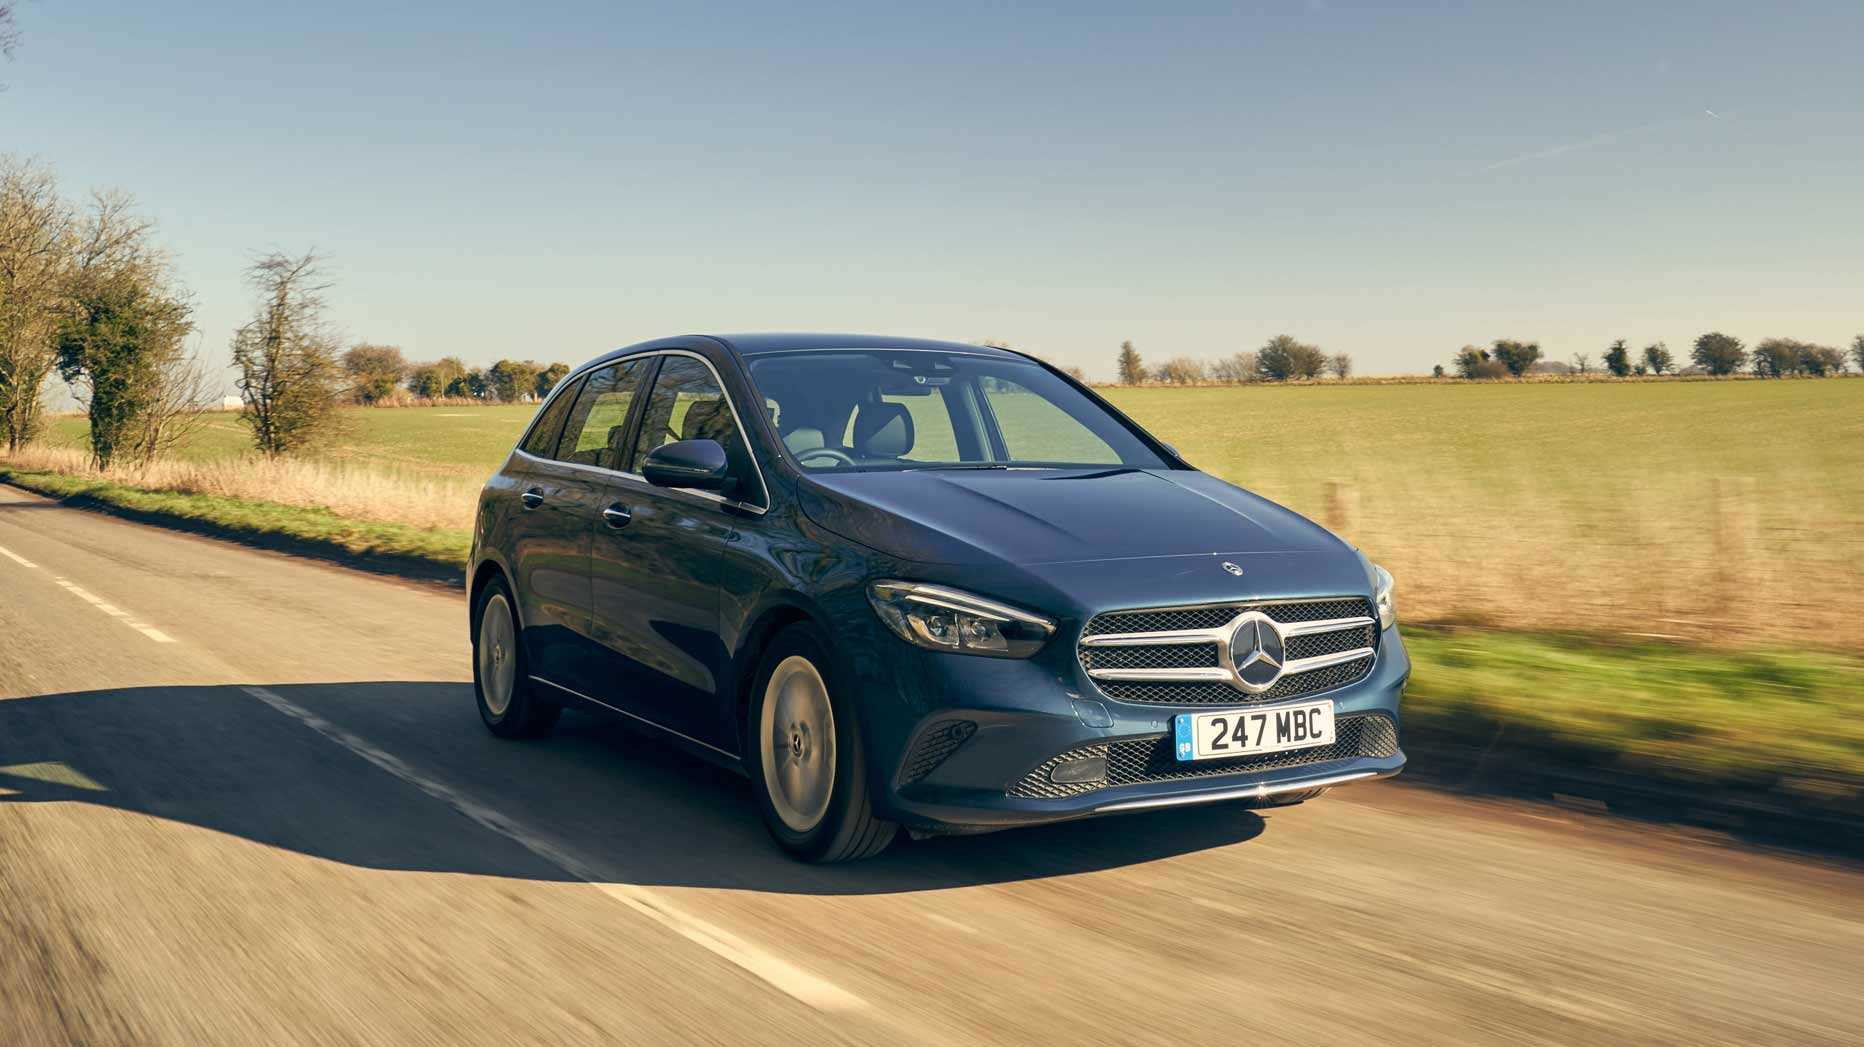 Used Mercedes Benz B Class For Sale Lookers